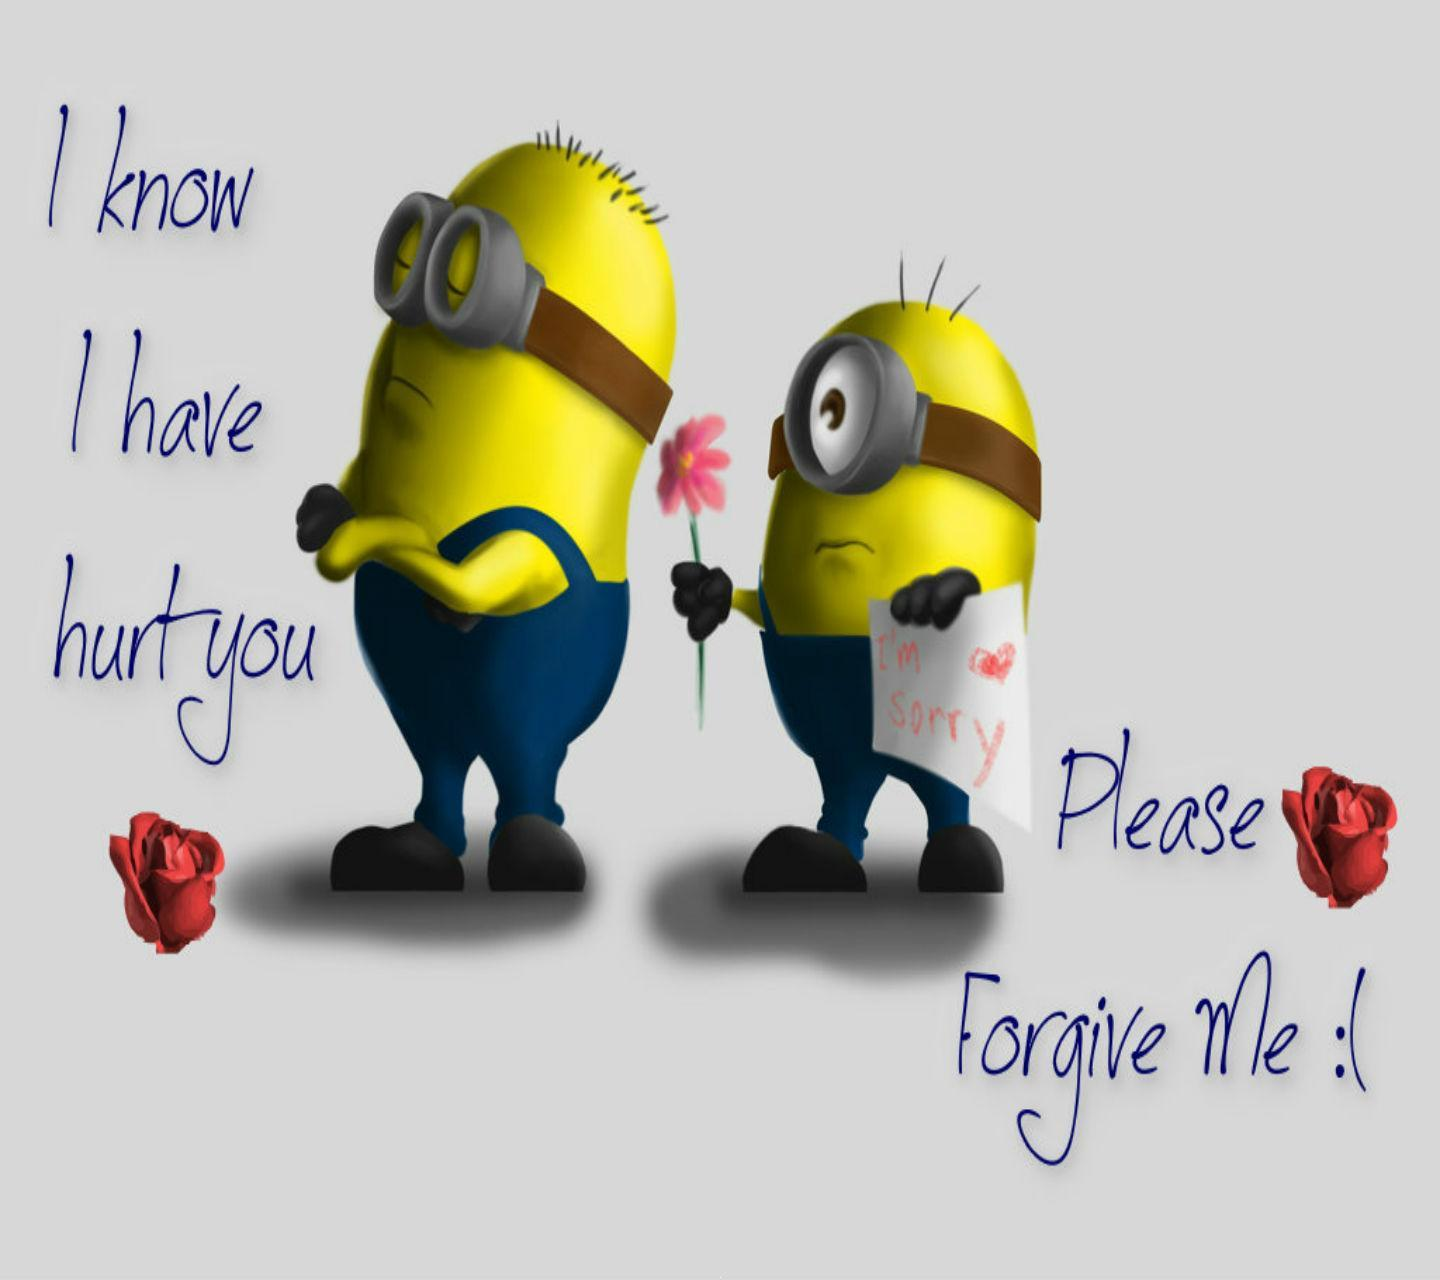 All Bollywood Girl Wallpaper Download Love Minions Whatsapp Funny Images For Your